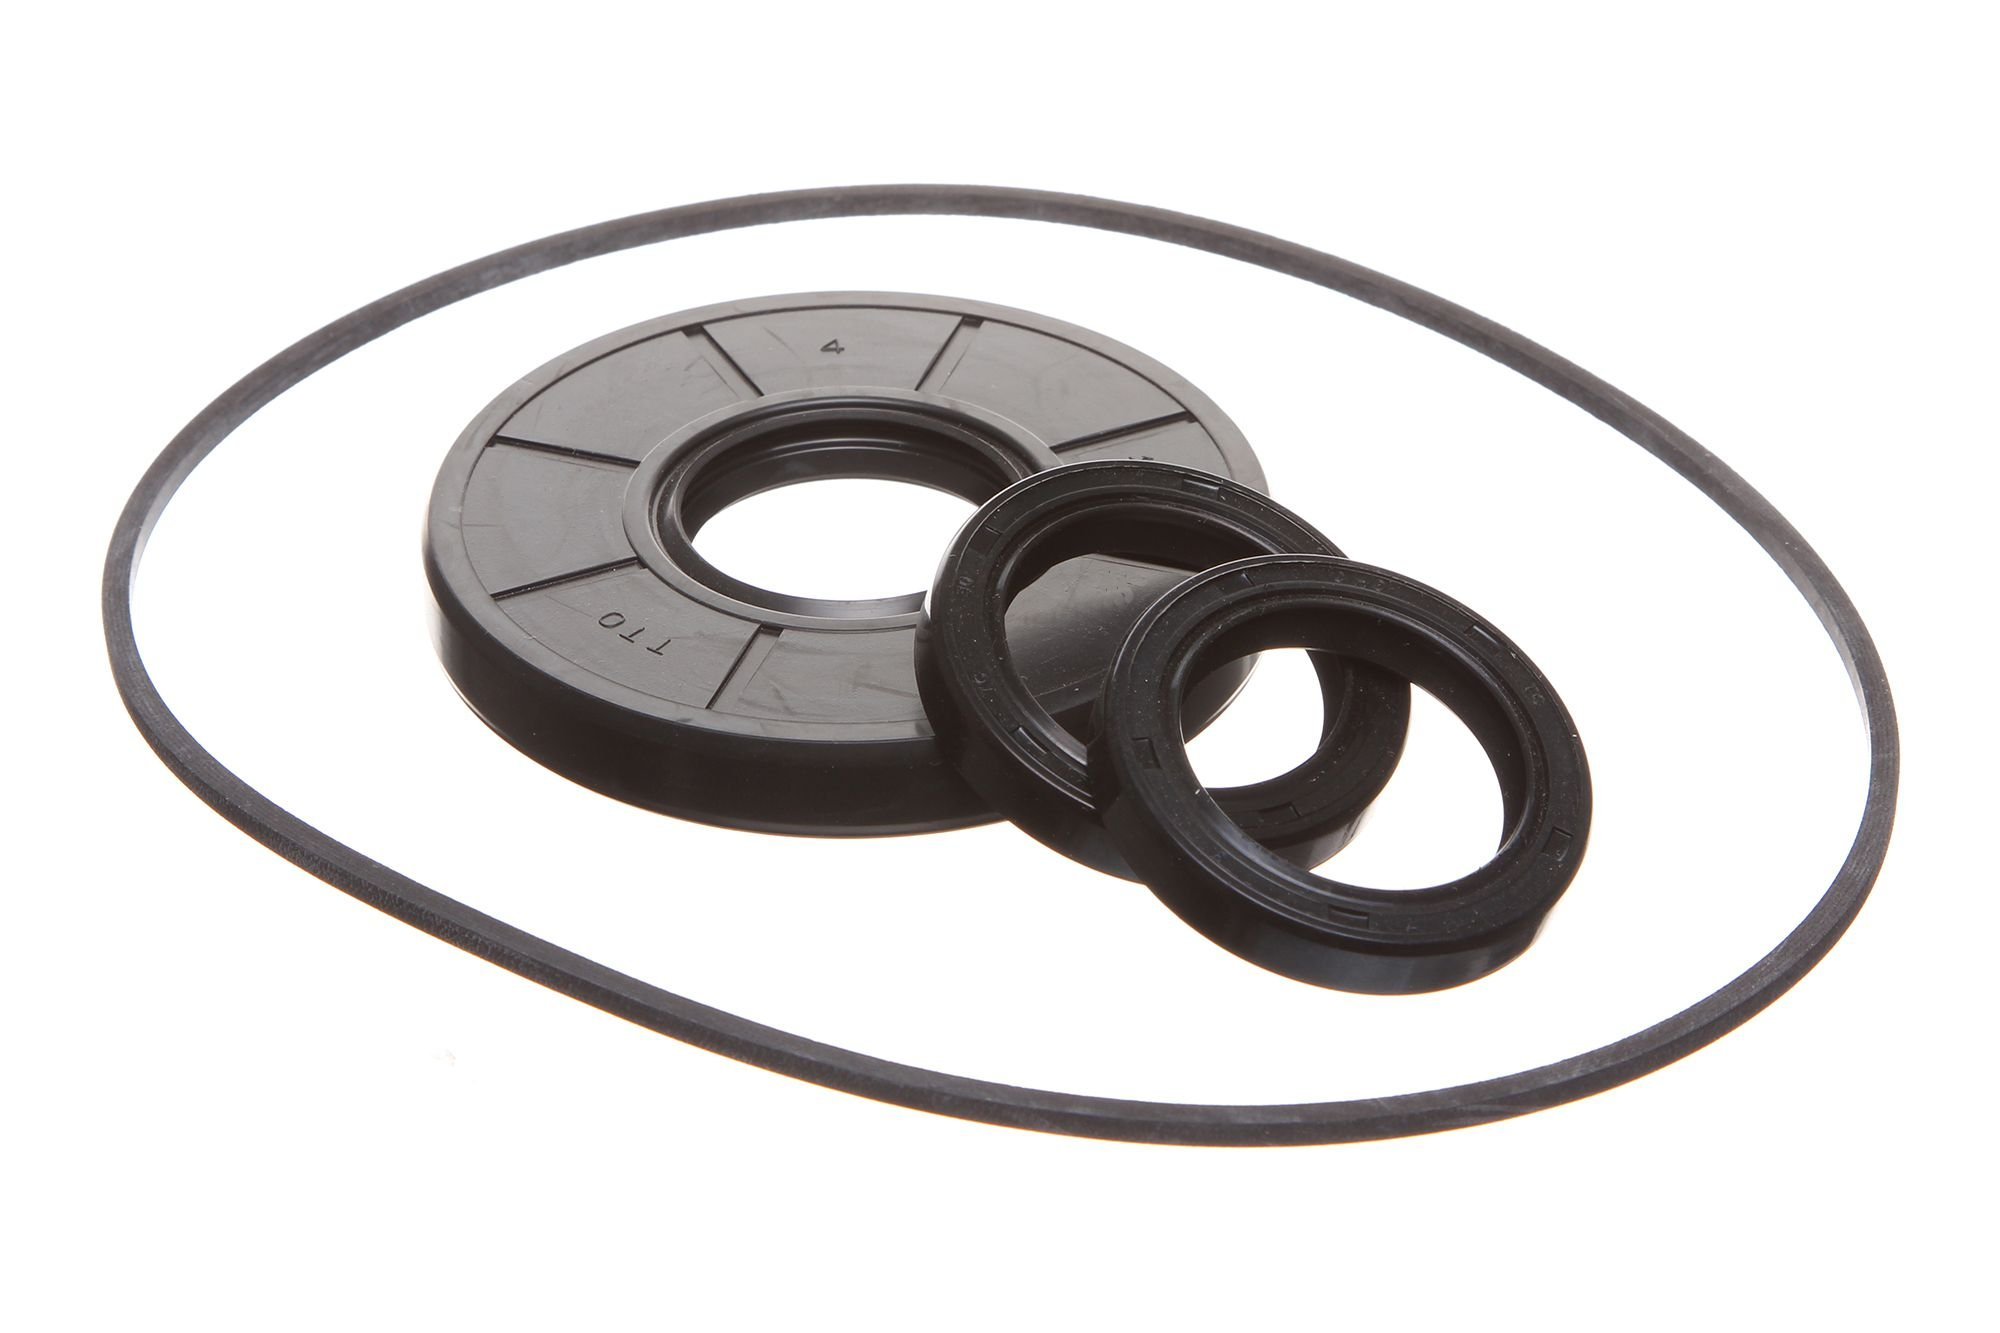 REPLACEMENTKITS.COM Brand Fits Polaris Sportsman Front Differential Seal Kit 2013-2017 Replaces 3235470 by REPLACEMENTKITS.COM